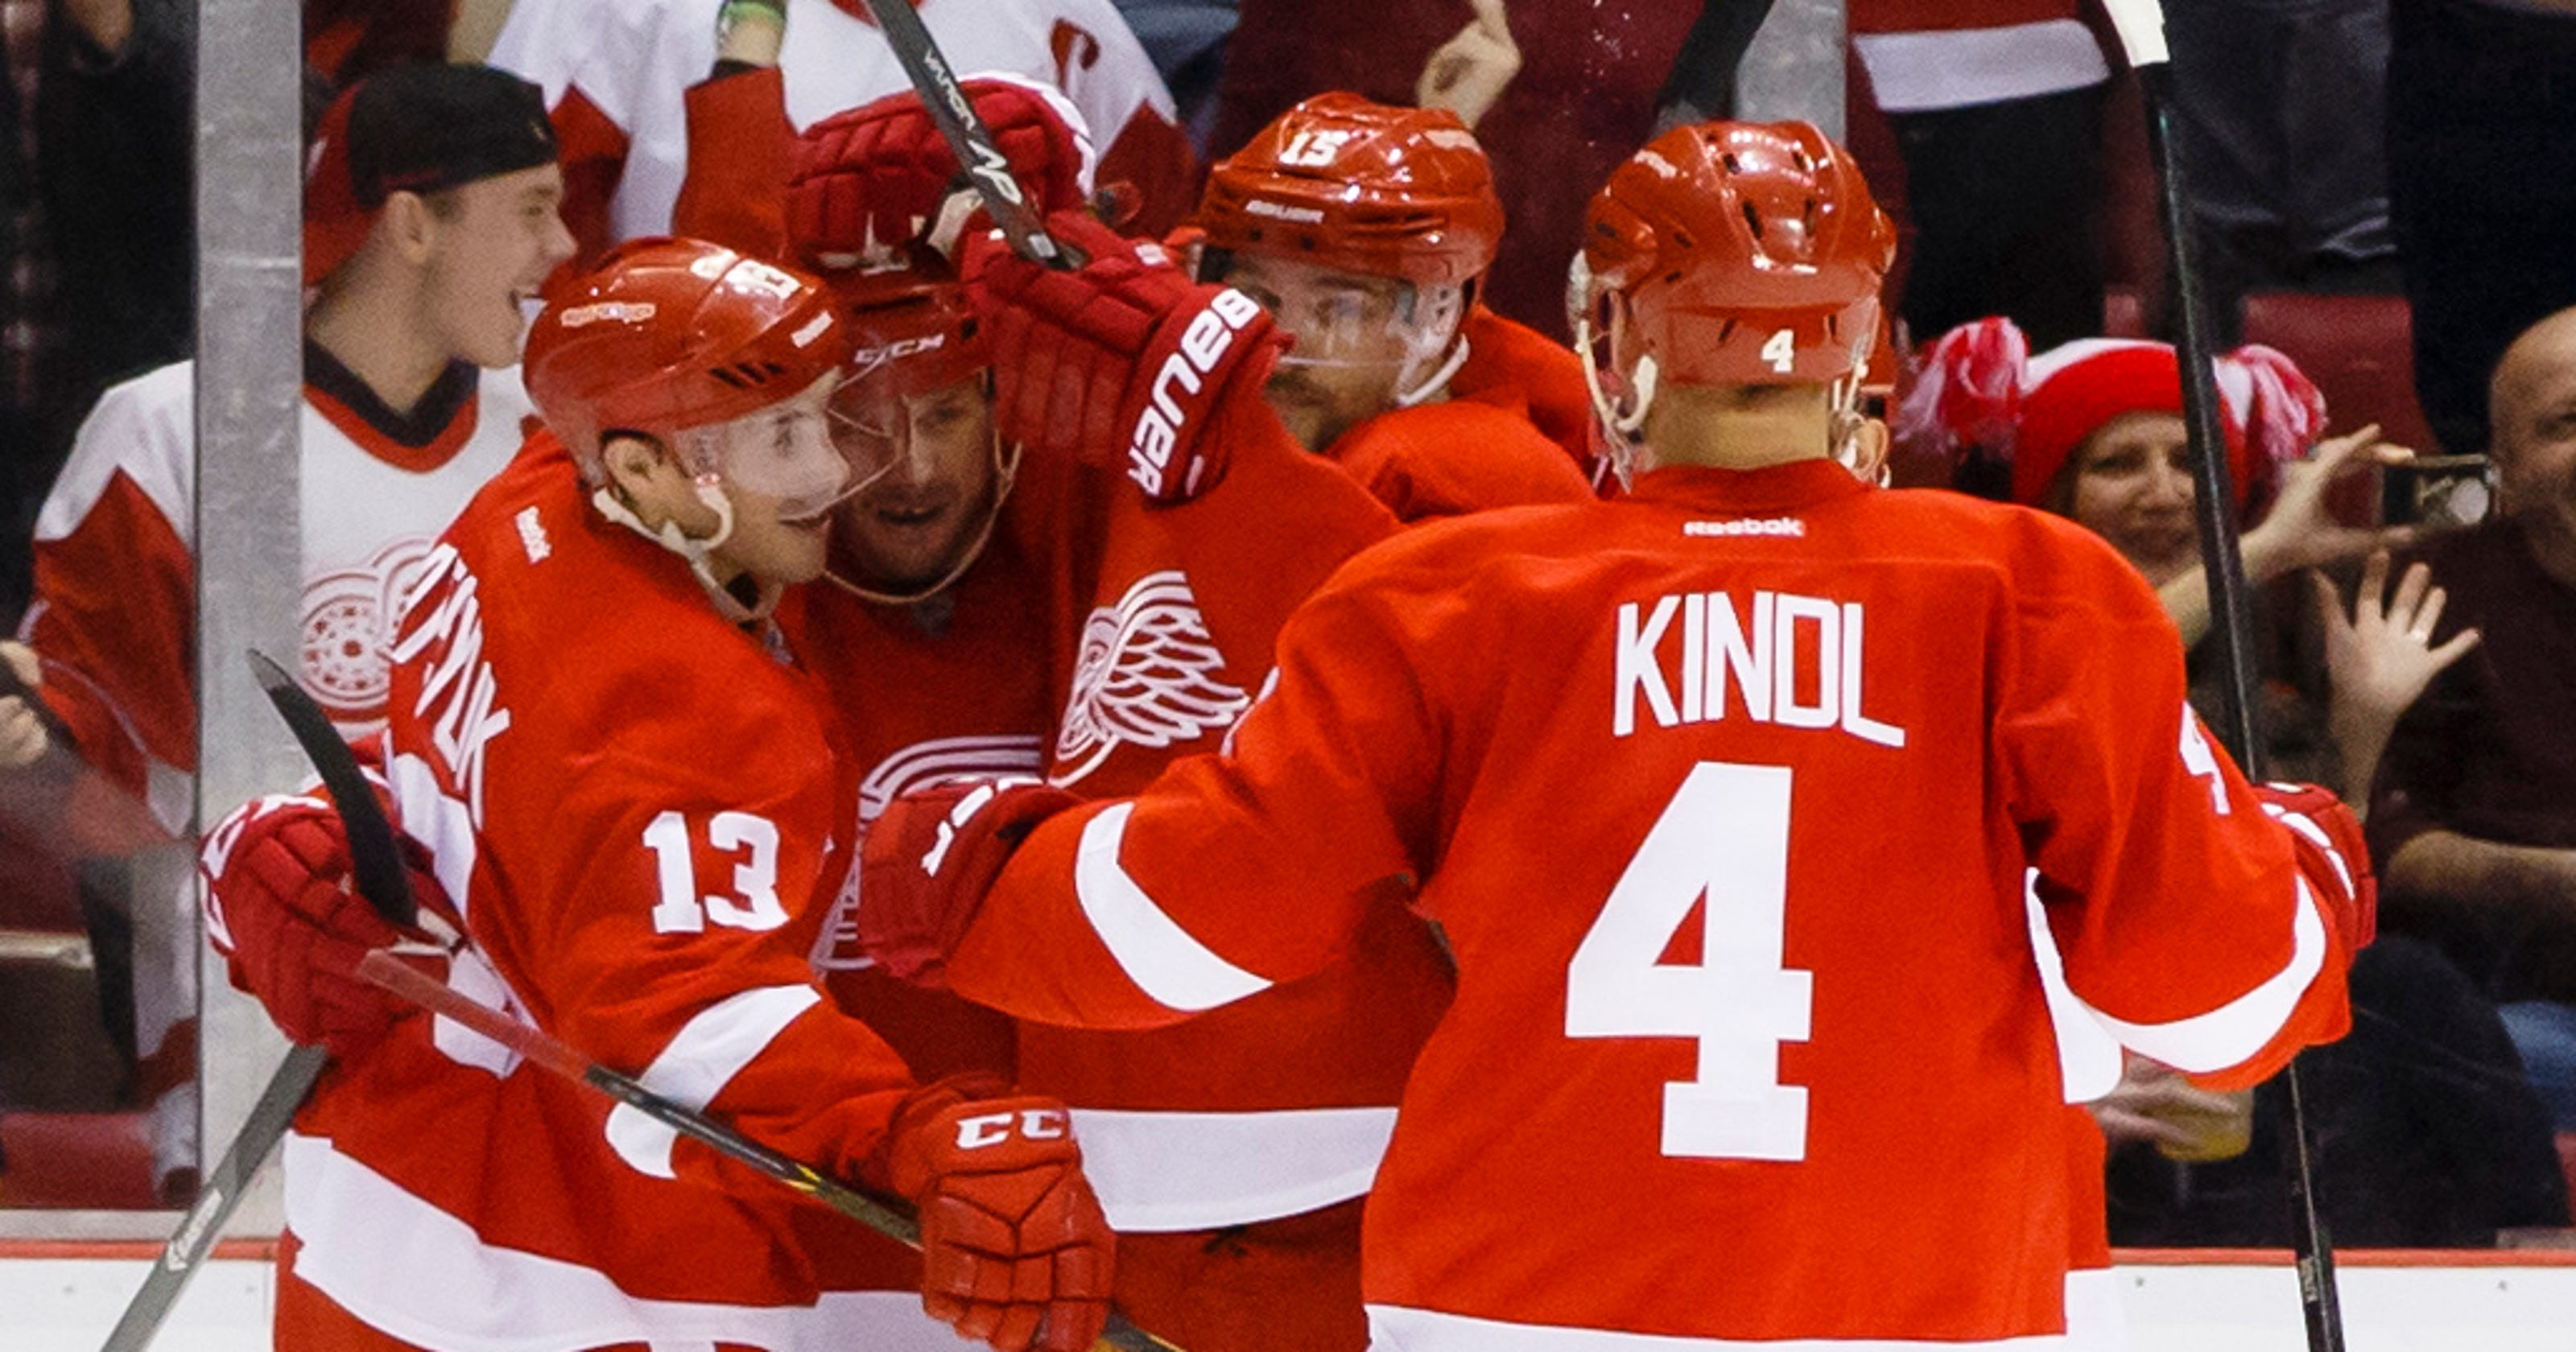 a0f5d2bd8 Pavel Datsyuk returns with two goals as Red Wings drub Flyers